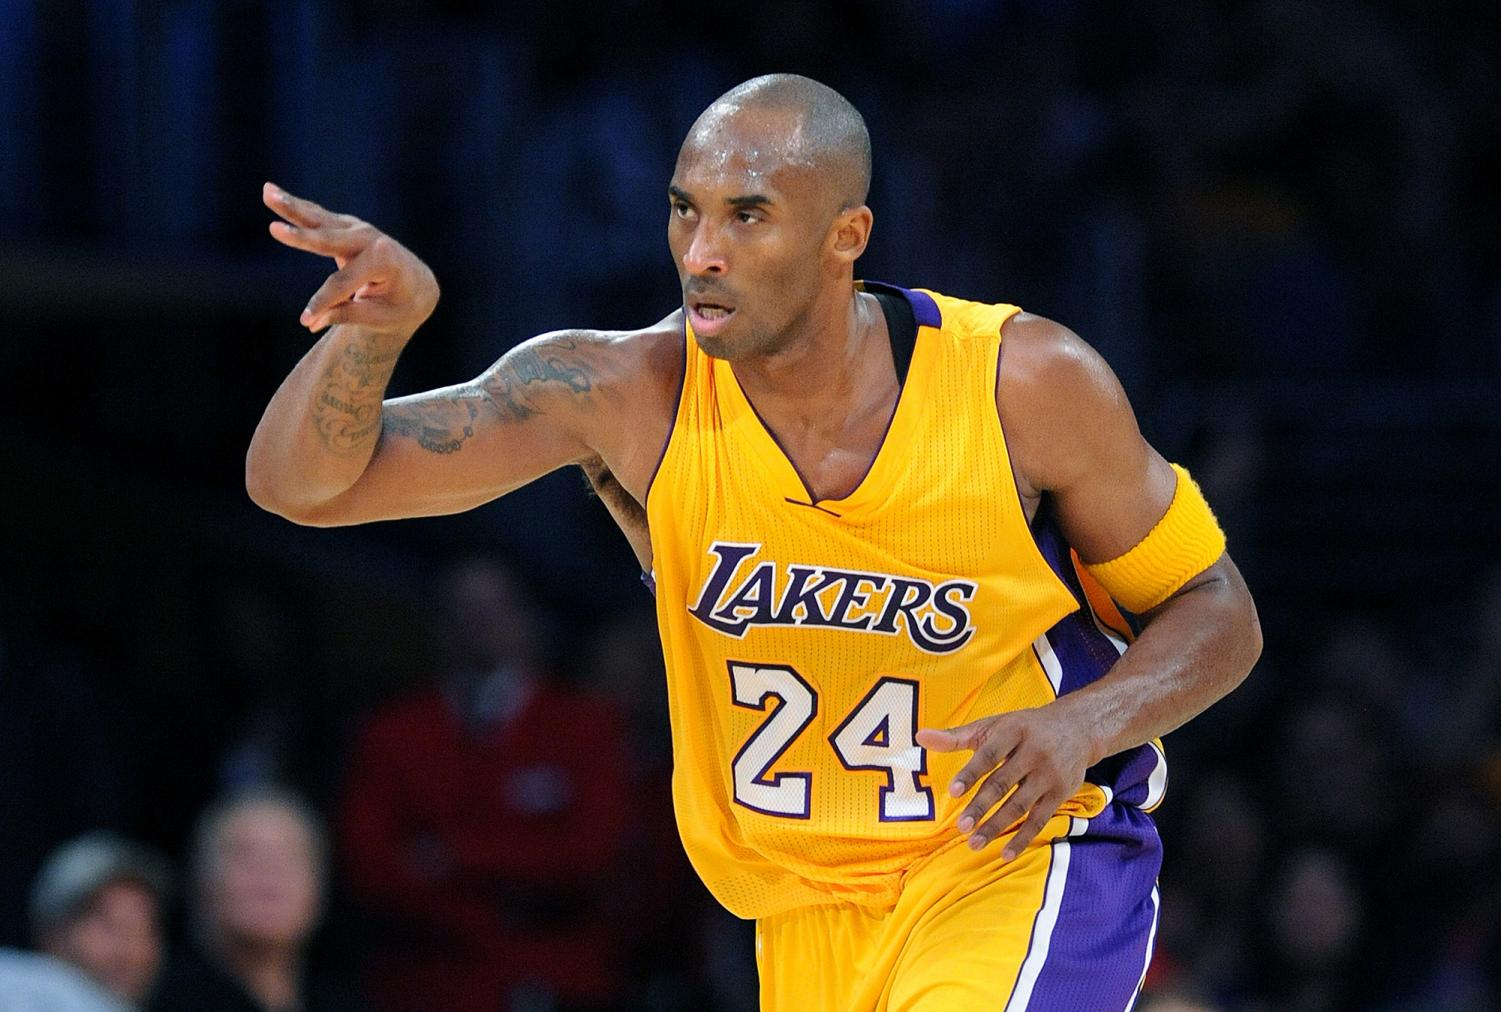 The Los Angeles Lakers' Kobe Bryant celebrates his 3-pointer against the Minnesota Timberwolves in the second quarter at Staples Center in Los Angeles on Wednesday, Oct. 28, 2015.